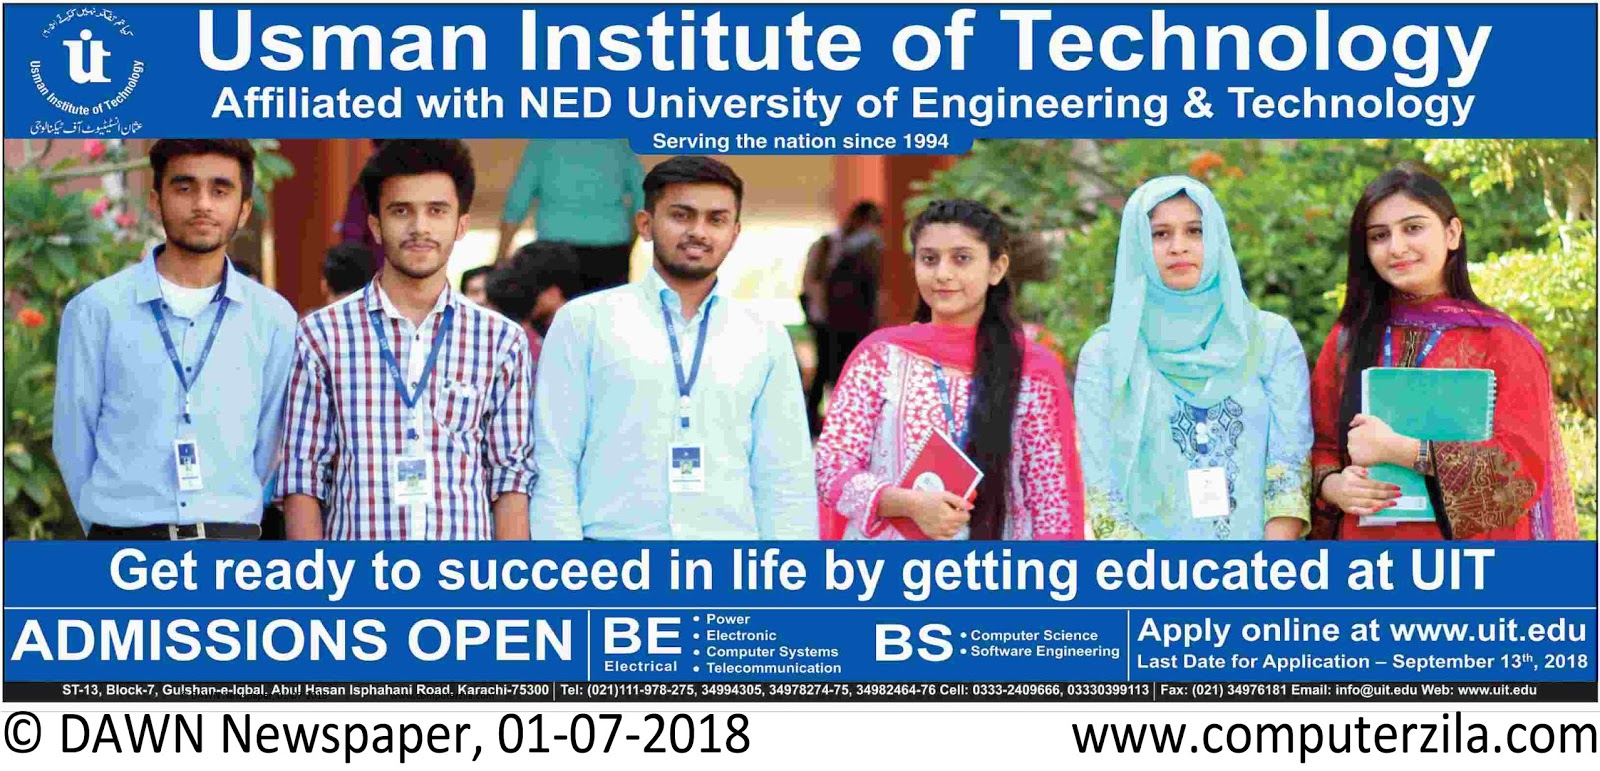 Usman Institute of Technology Admissions Fall 2018